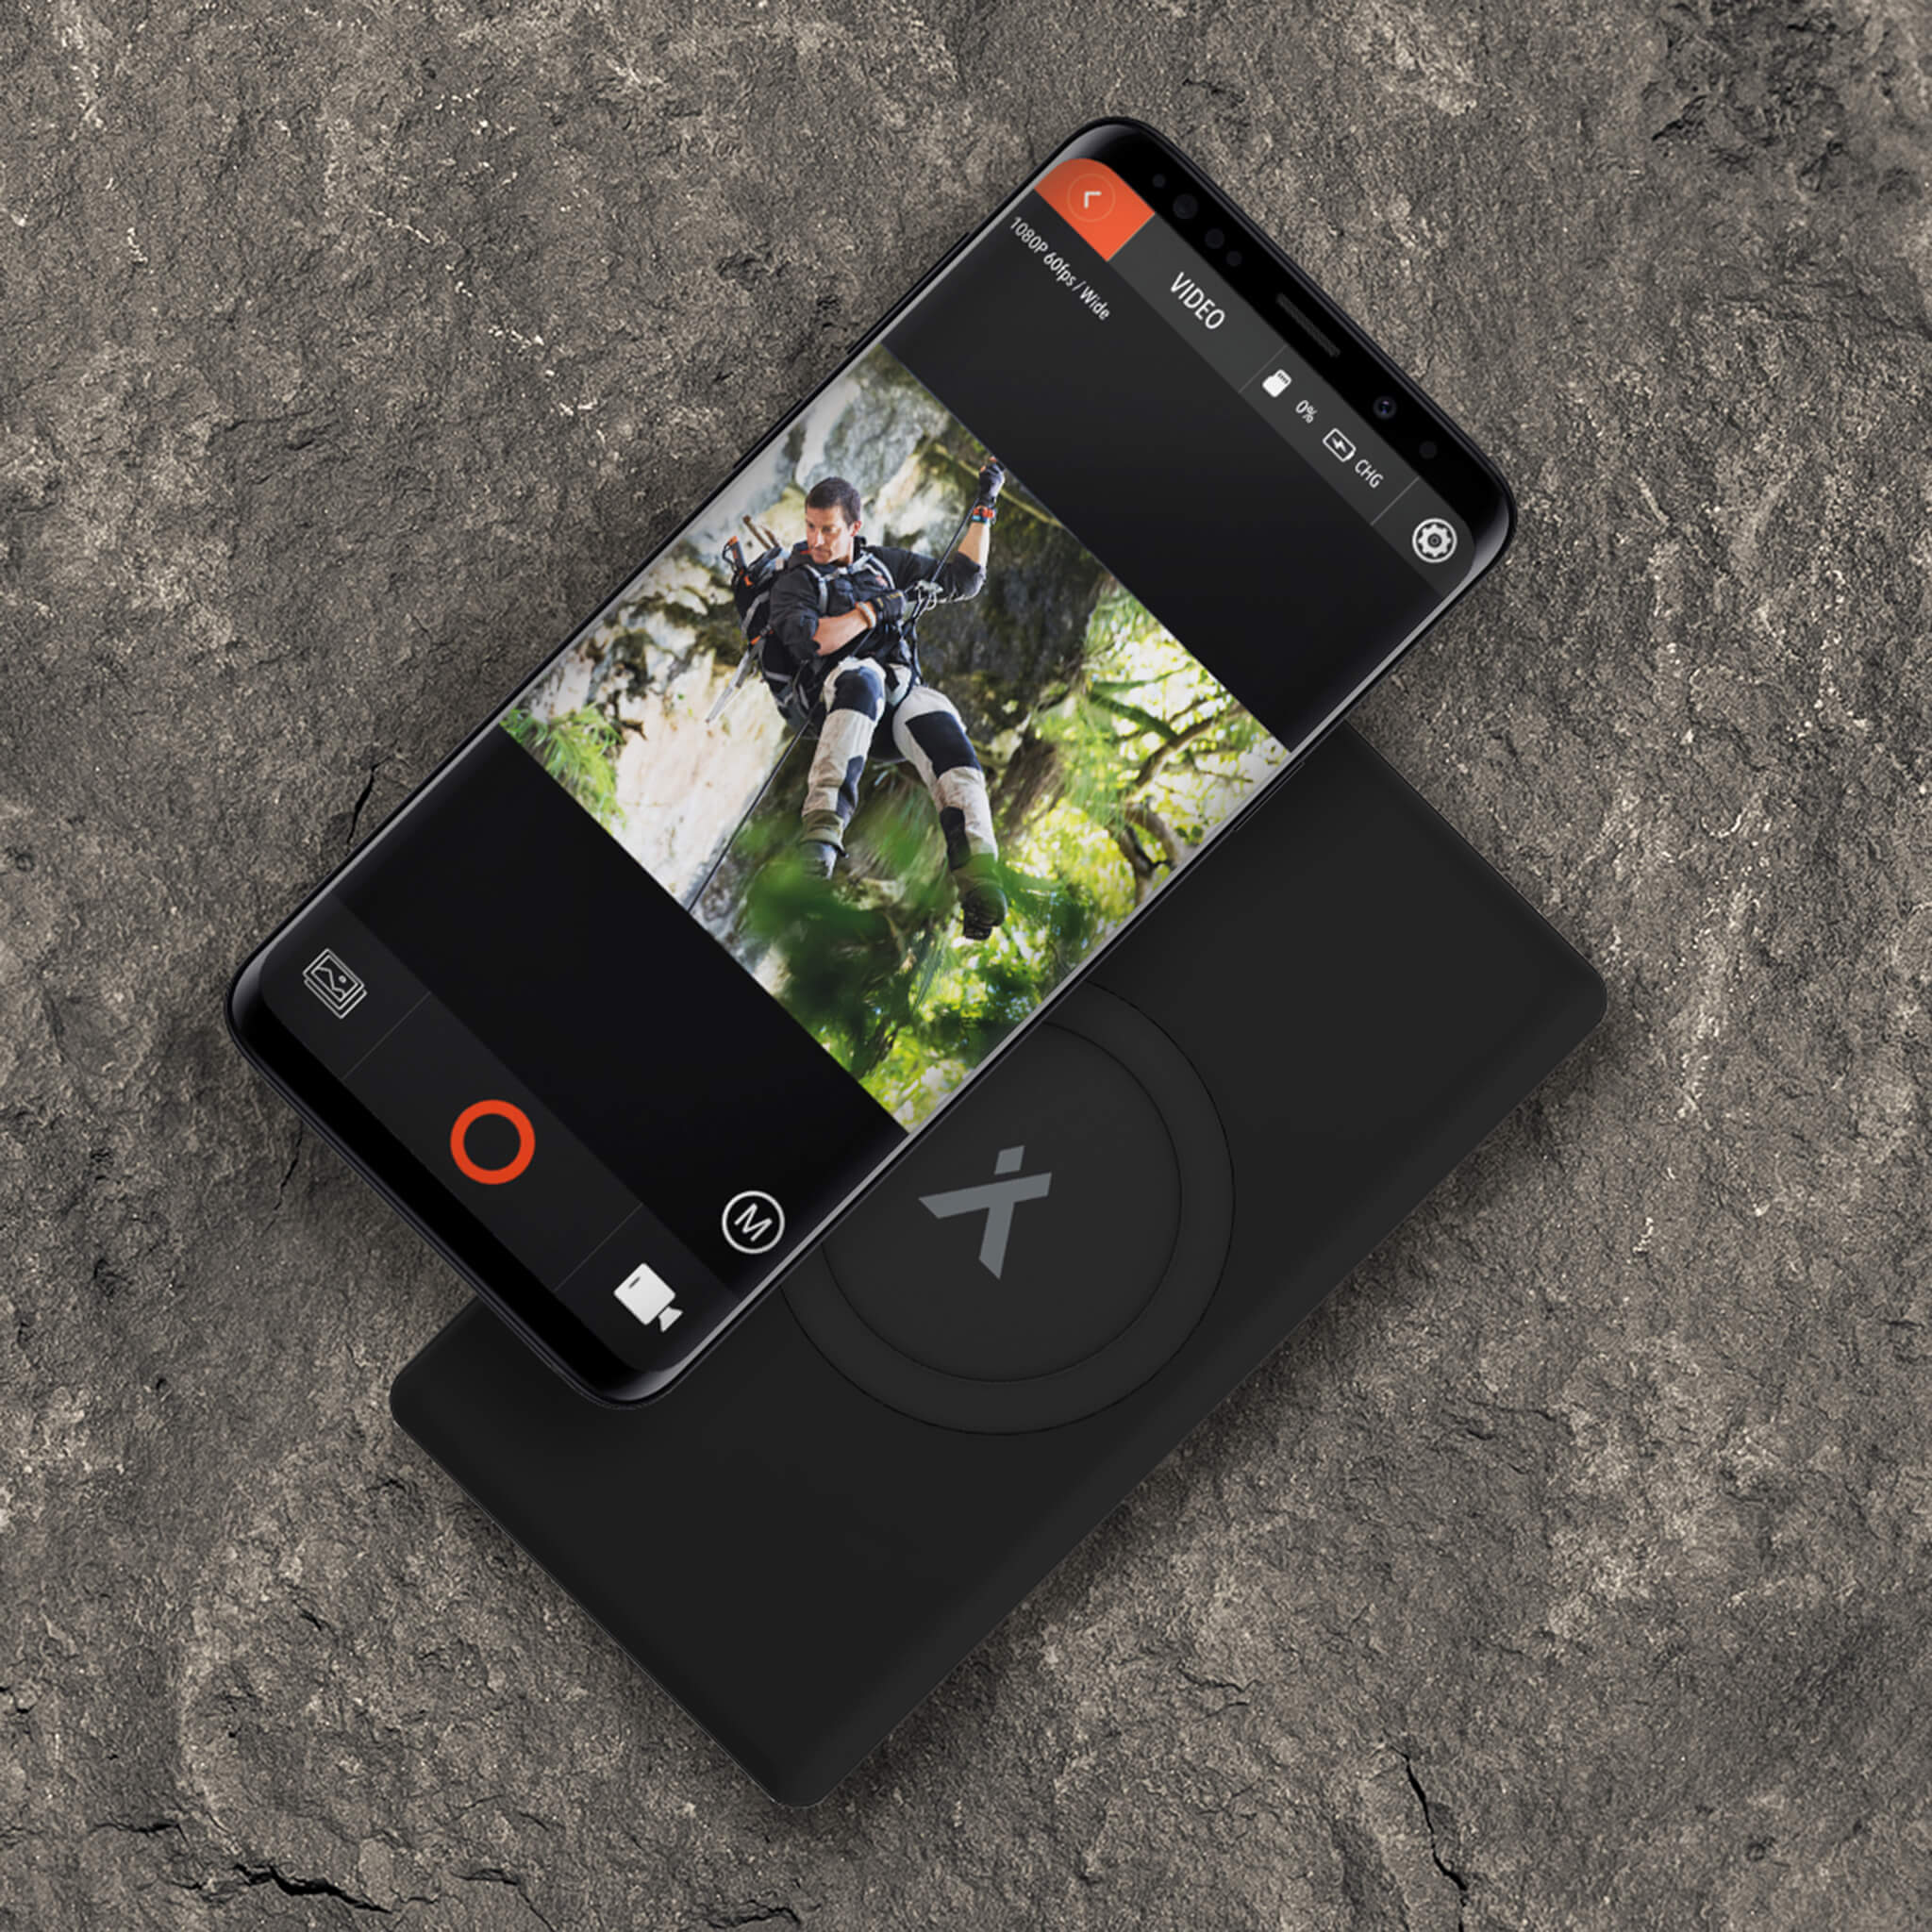 Bear Grylls power bank charging a mobile phone